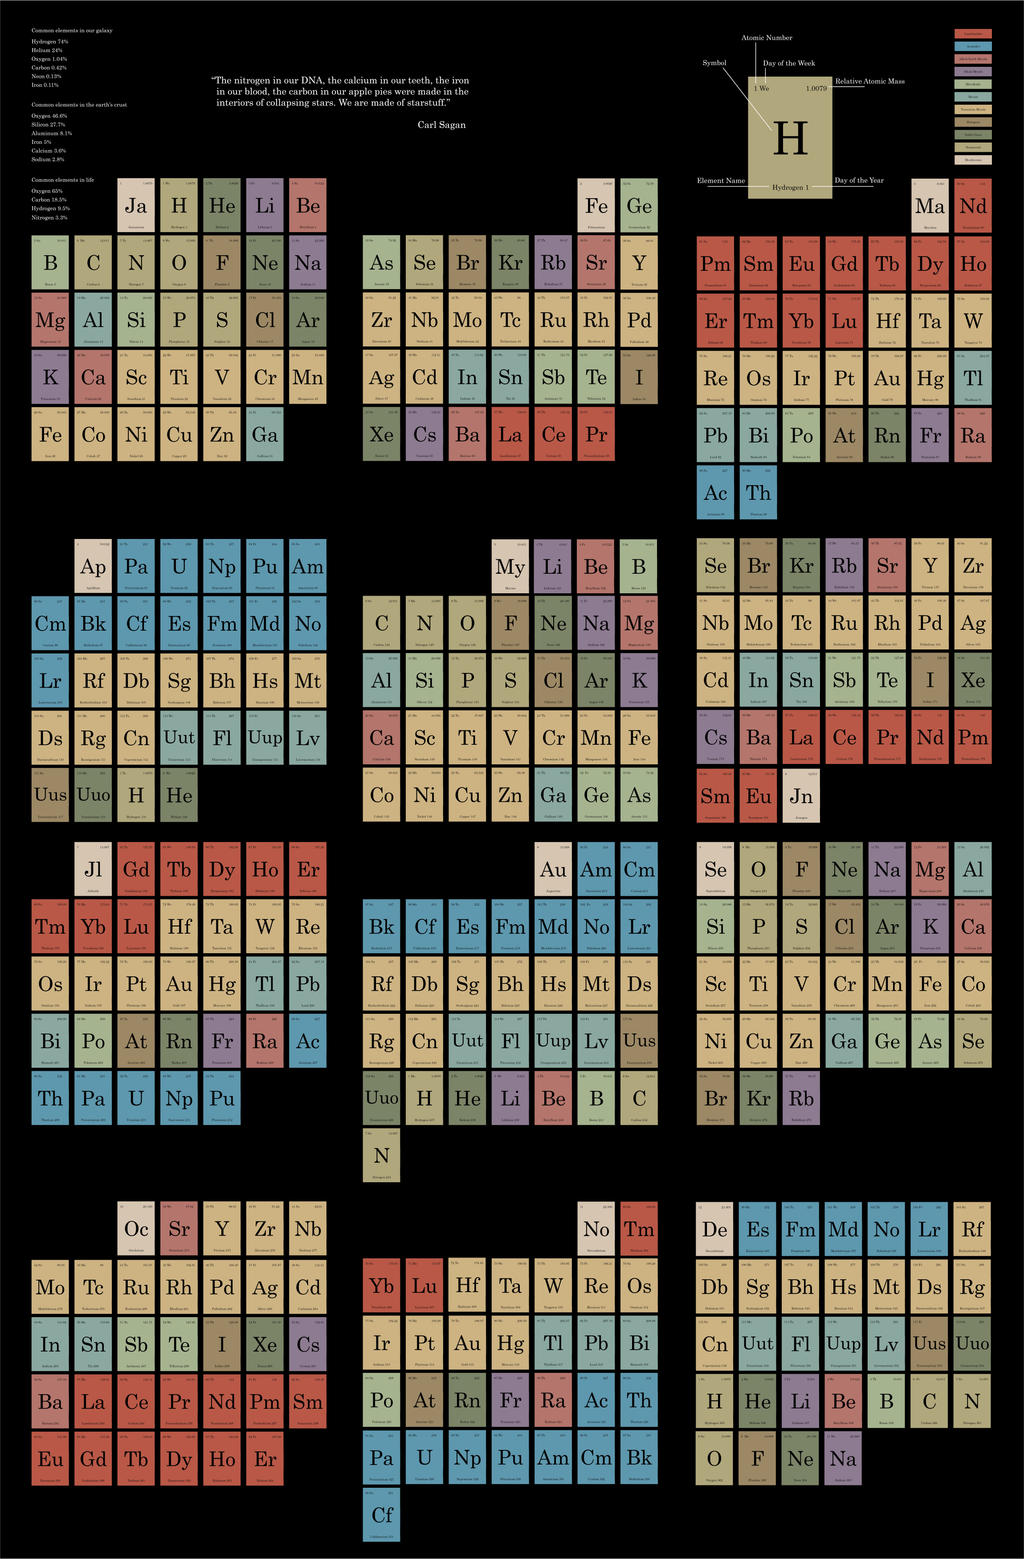 Periodic Calendar for the year 2014 by Tanias-Reign